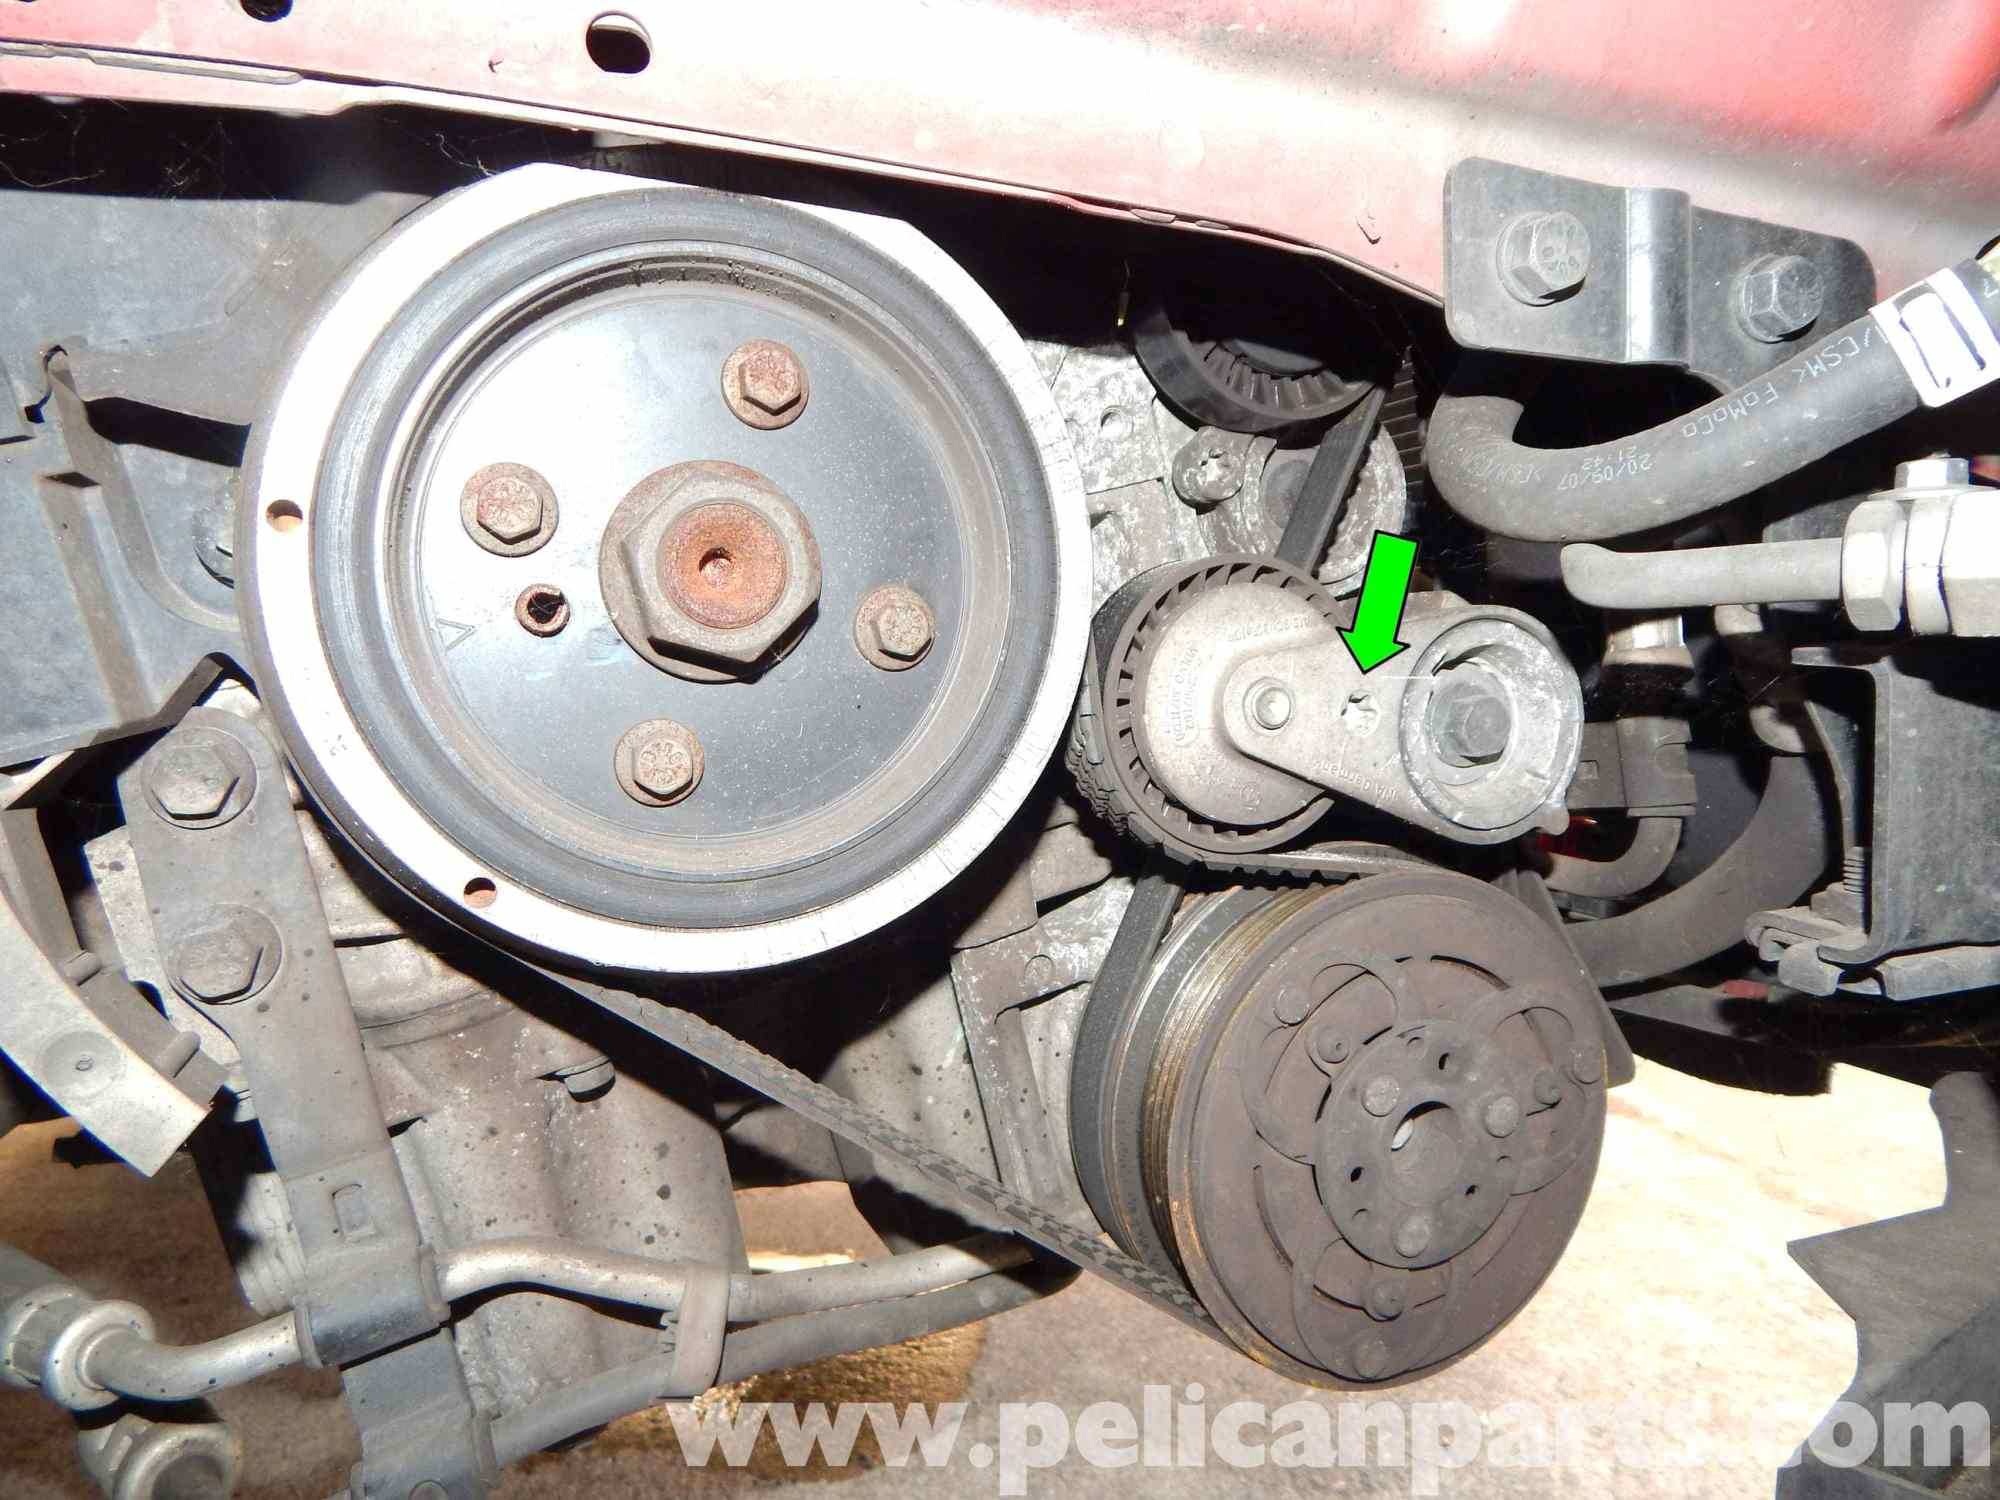 hight resolution of volvo c30 belt and tensioner replacement 2007 2013 pelican parts volvo c30 serpentine belt replacement volvo c30 drive belt diagram